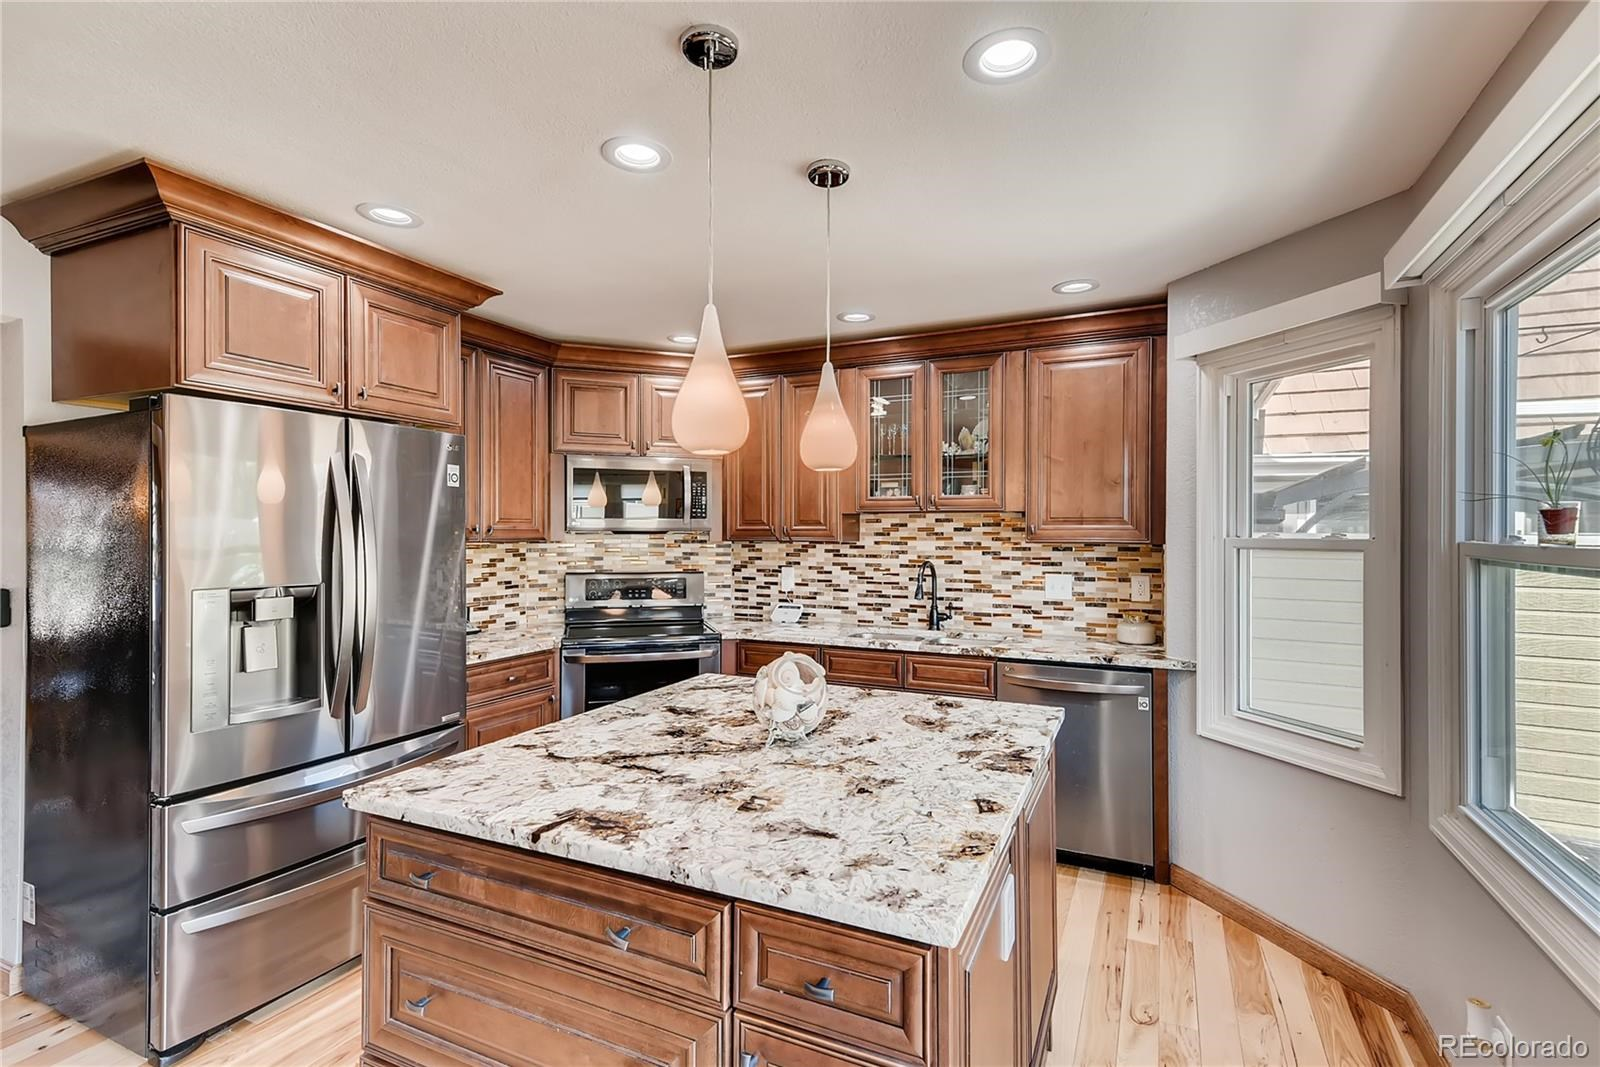 MLS# 6910180 - 5 - 2336 Ranch Drive, Westminster, CO 80234